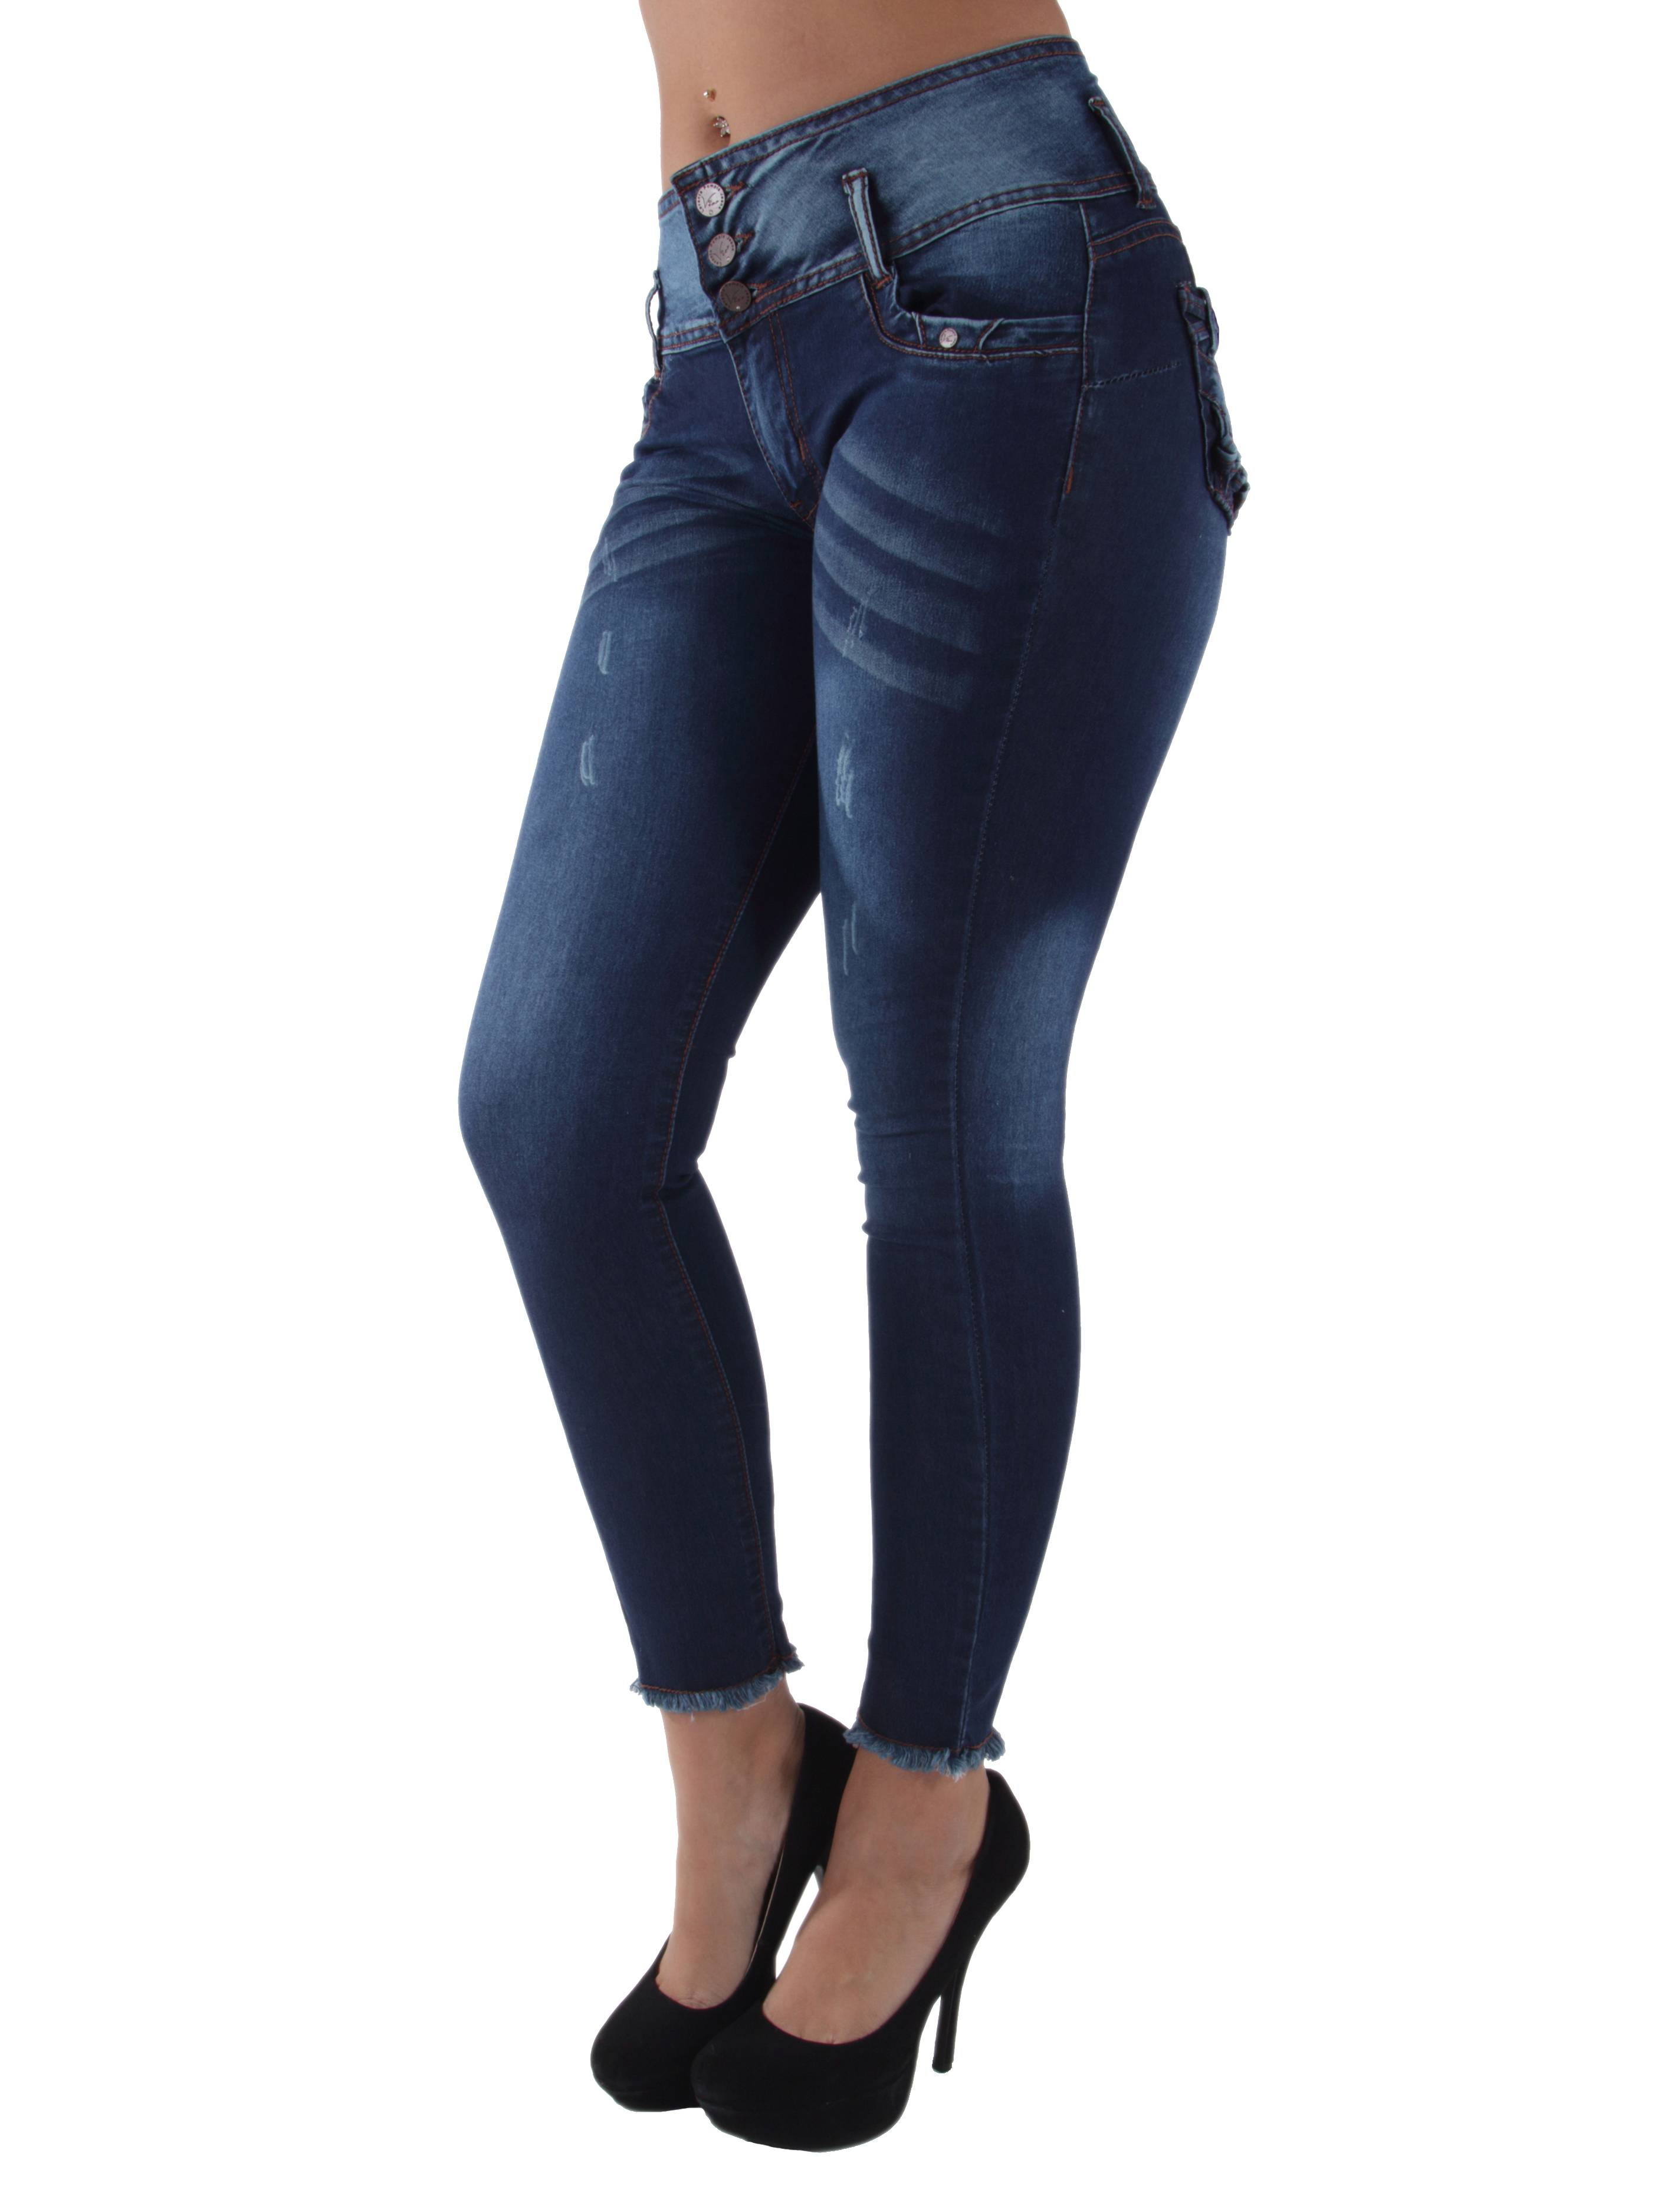 9W073(S) - Mid Waist, Butt Lift, Levanta Cola, Ankle Skinny Jeans